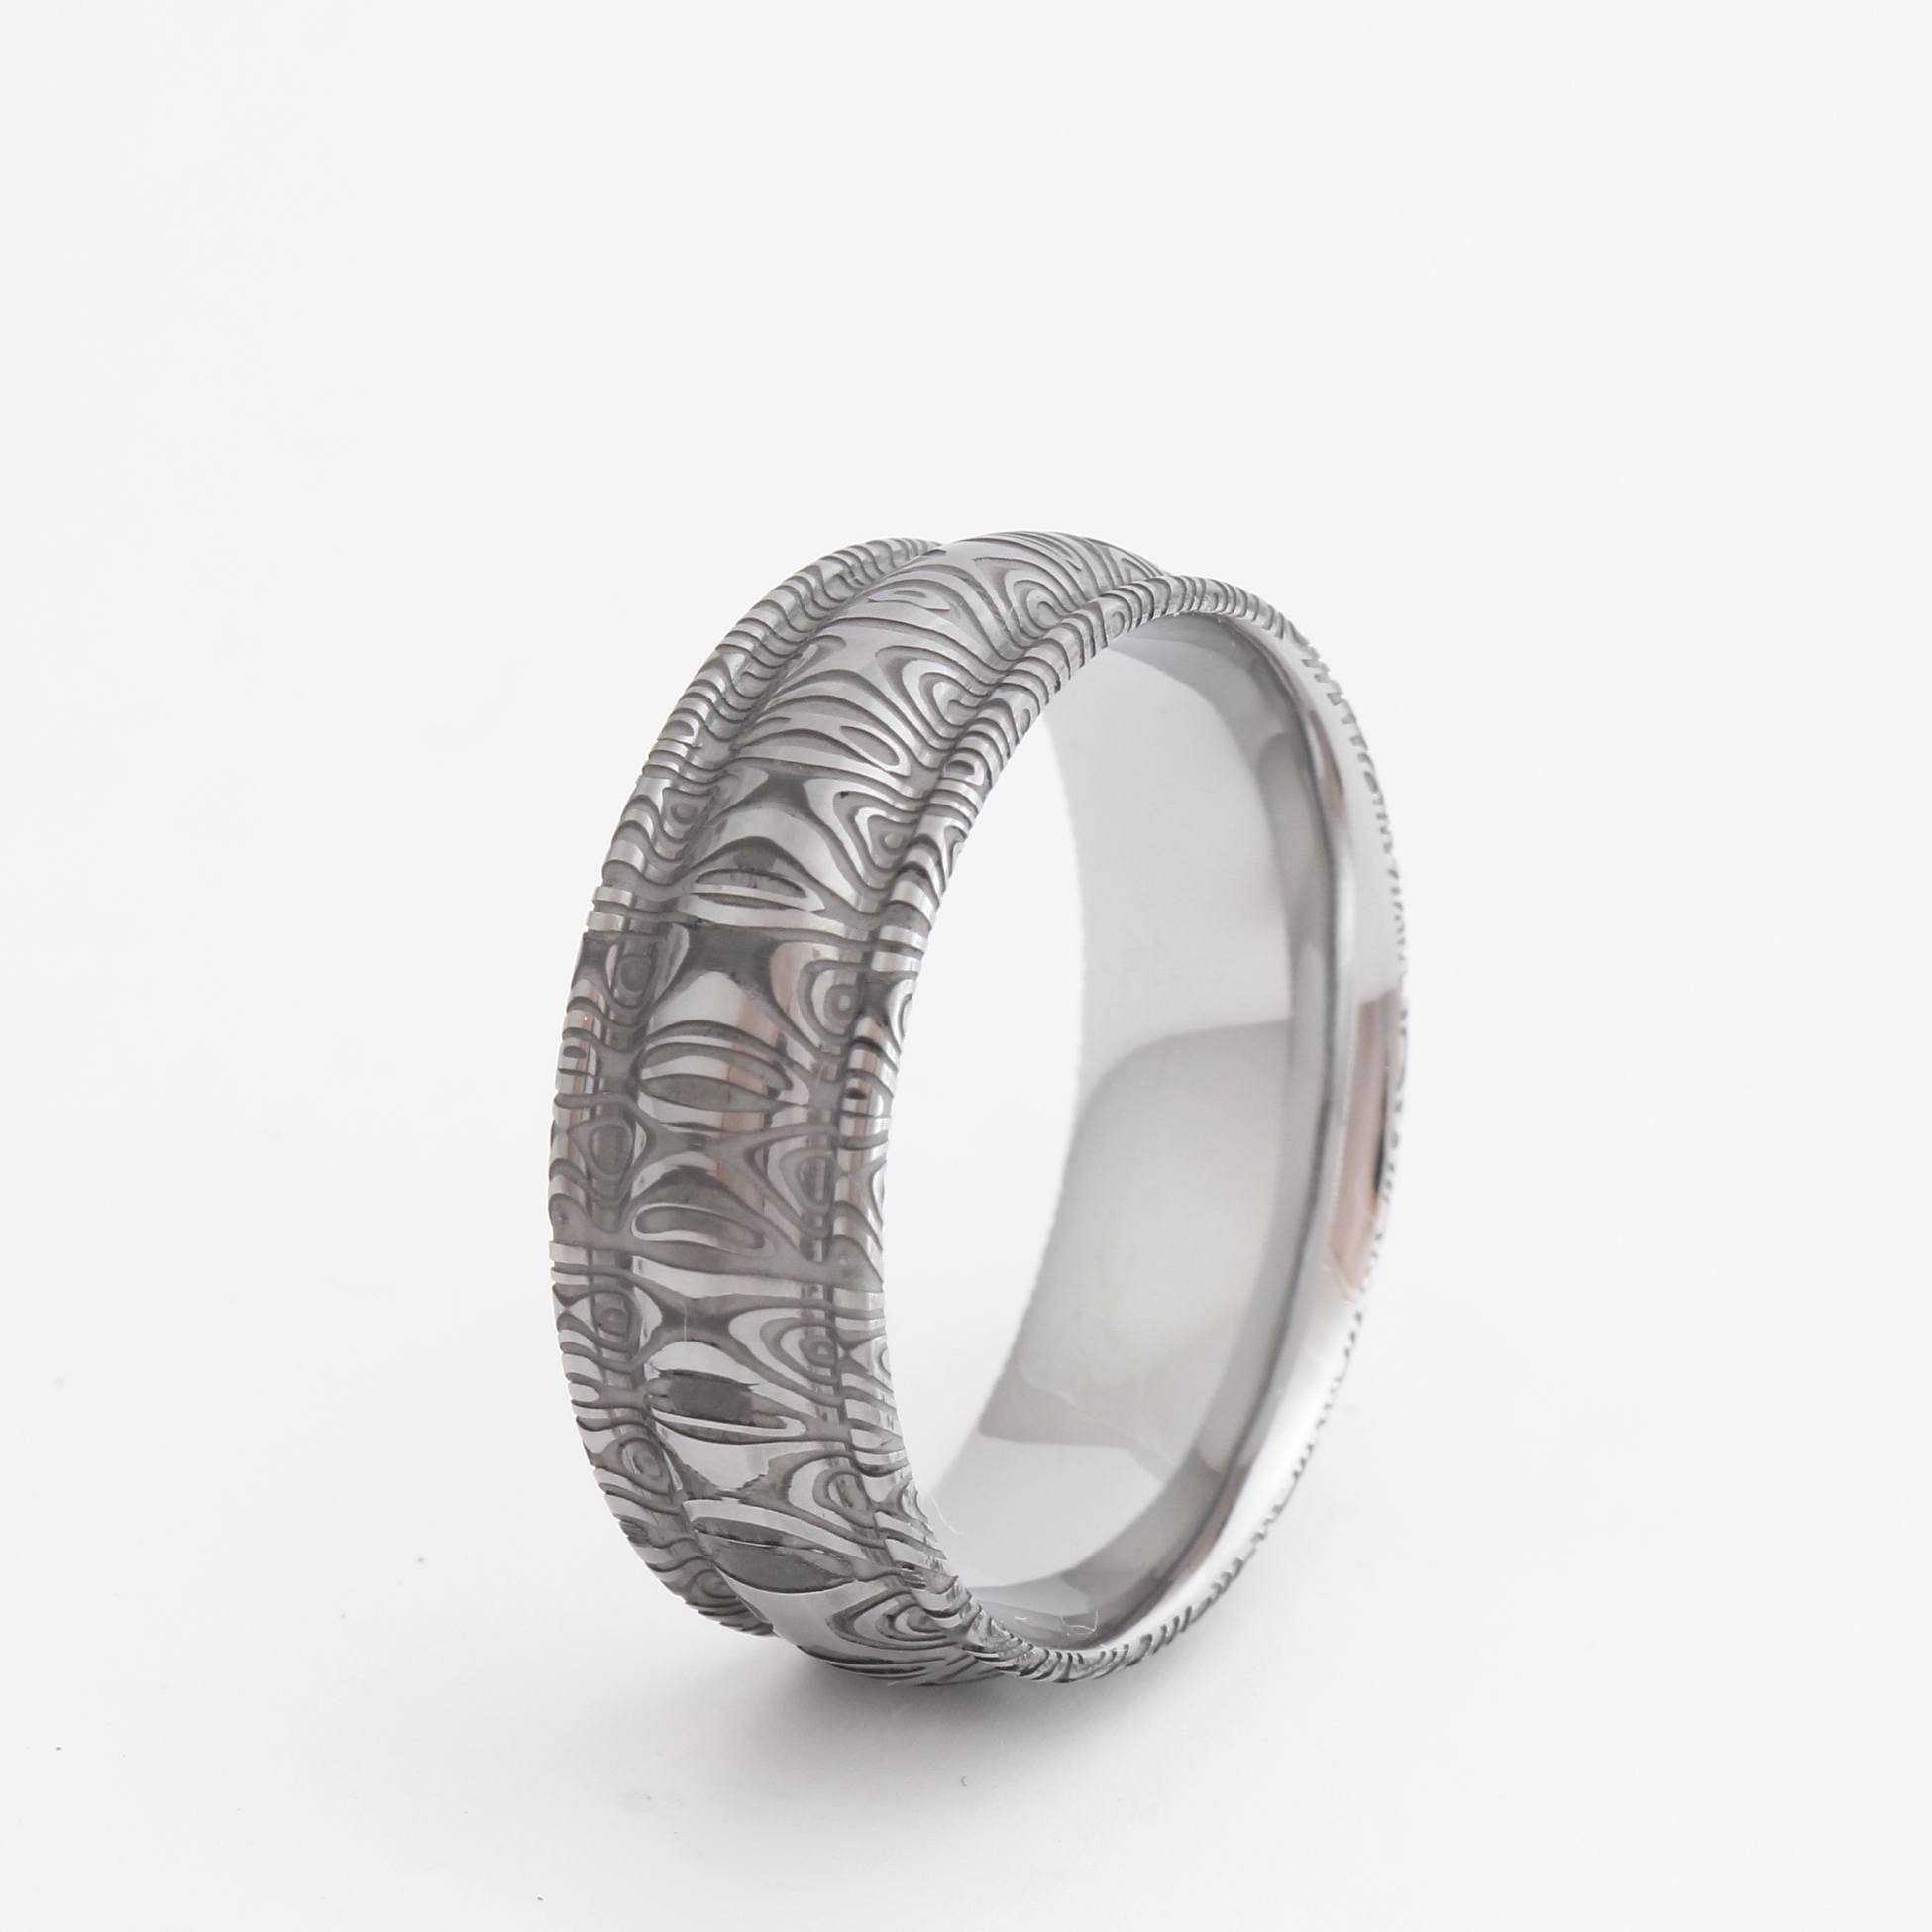 Damascus Wedding Bands With Stainless Steel Intended For Men's Damascus Wedding Bands (View 12 of 15)